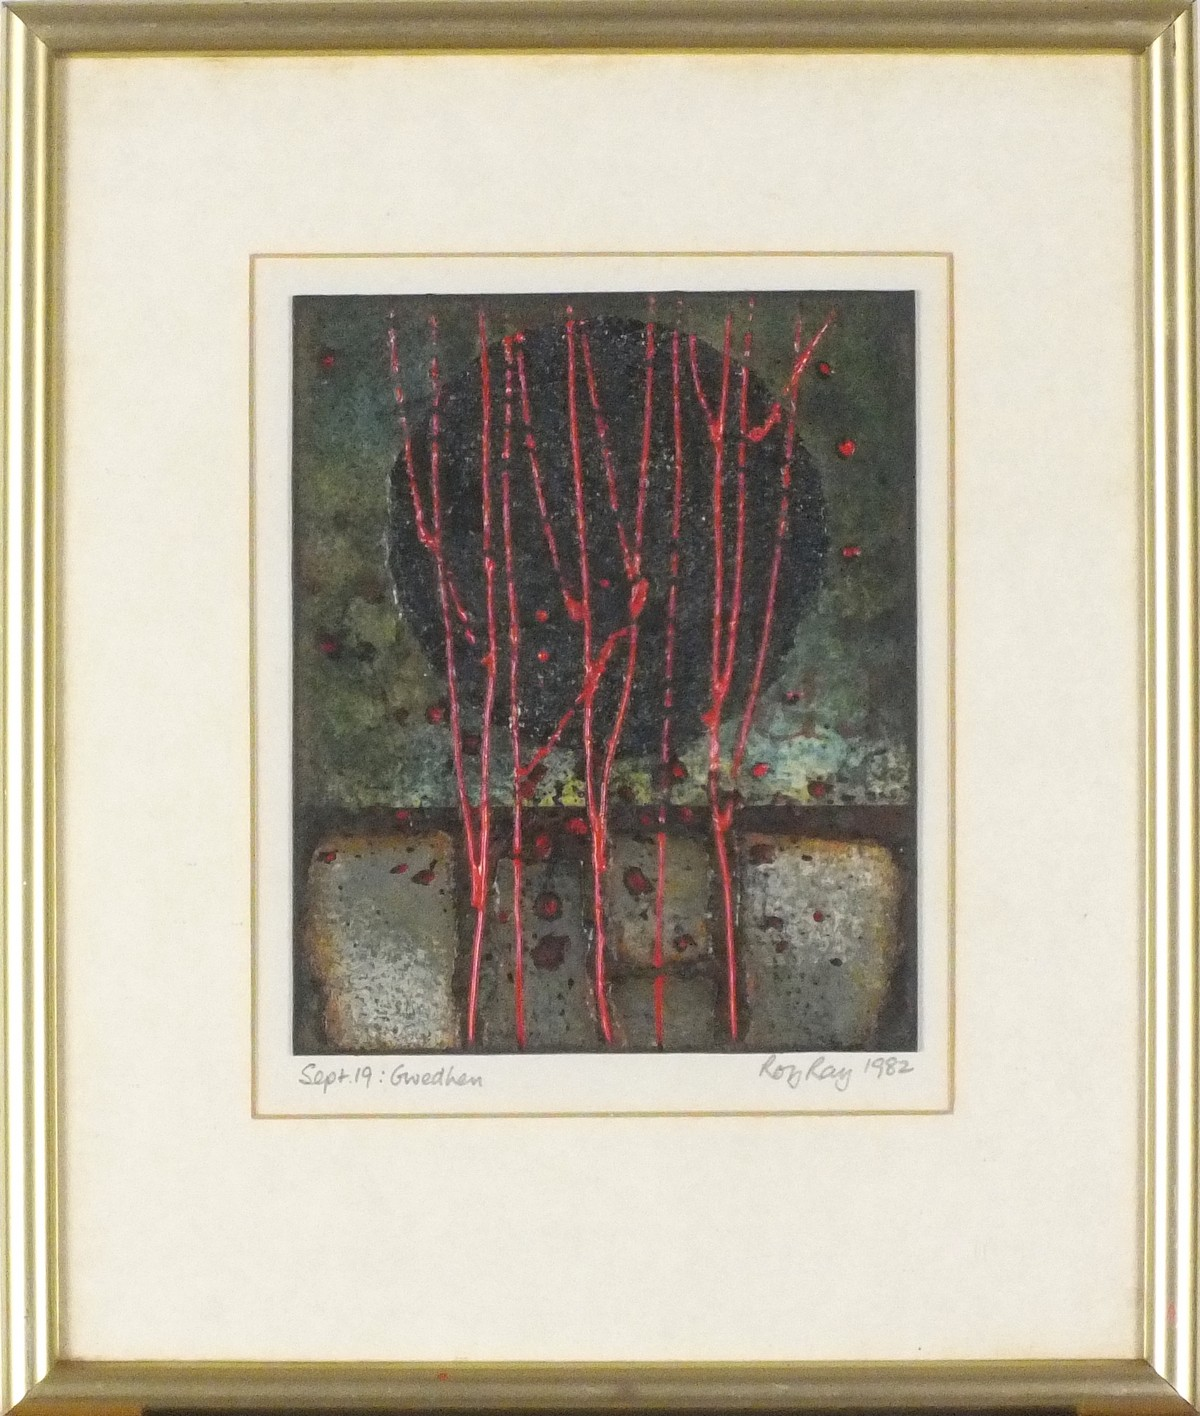 Lot 7 - * Roy RAY (b.1936), Mixed media on board, 'Gwedhen', Inscribed, signed & dated Sept 19th 1982, 6.75""